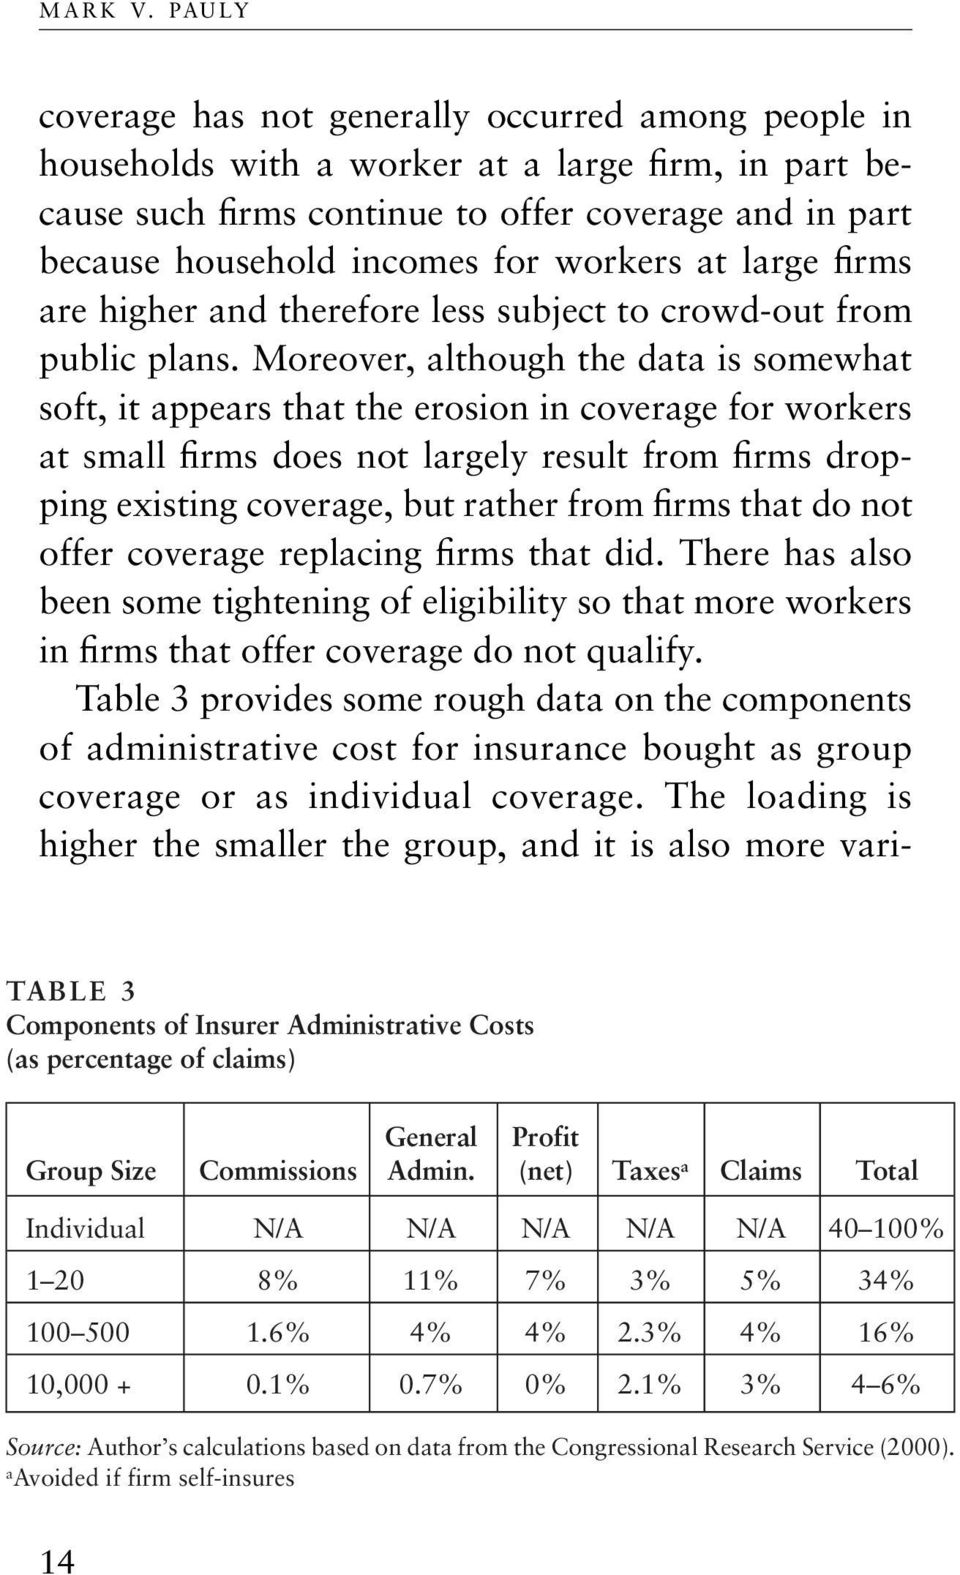 workers at large firms are higher and therefore less subject to crowd-out from public plans.